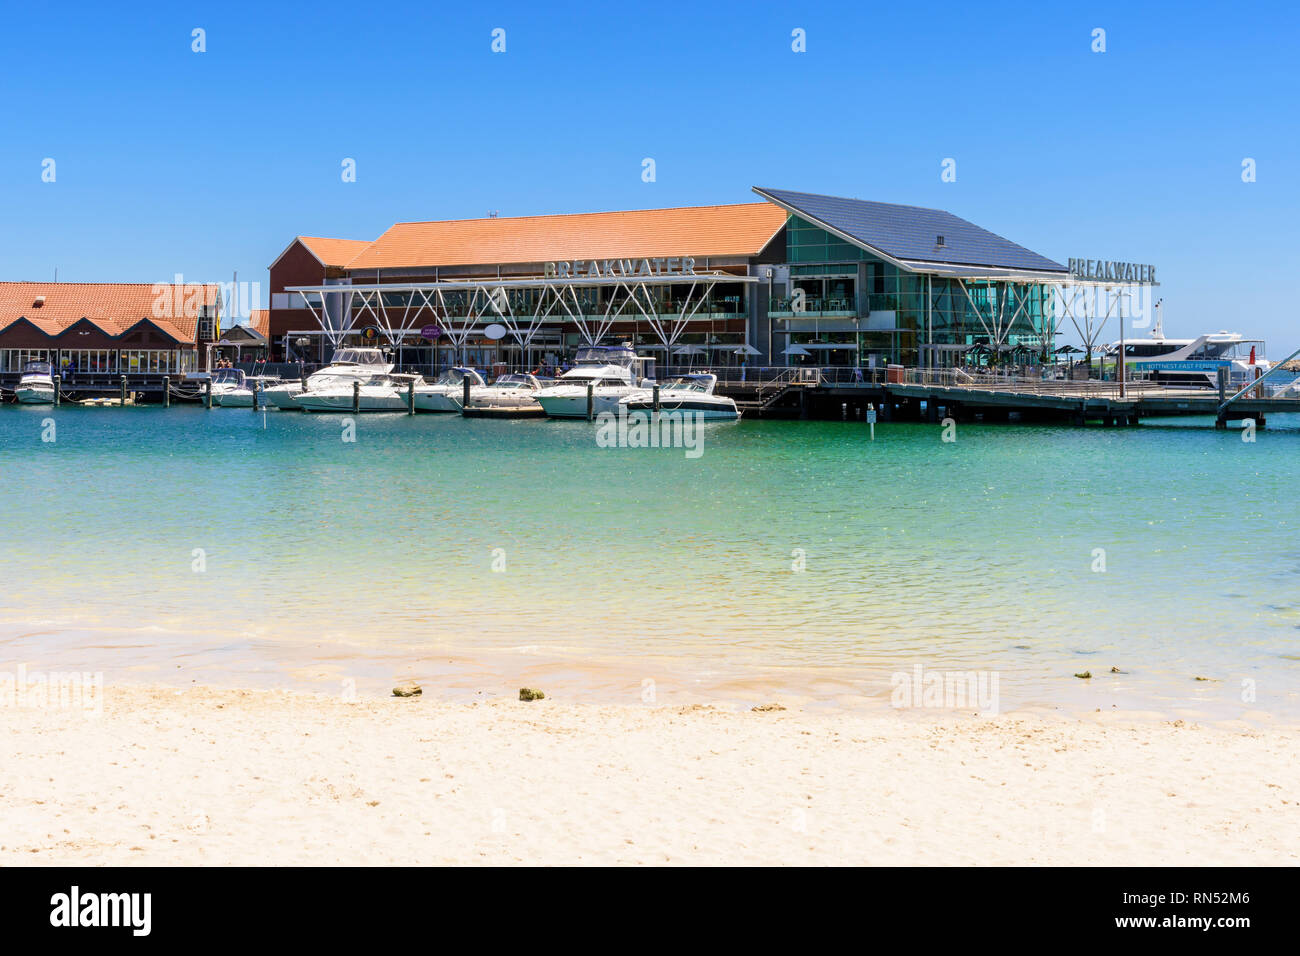 The soft sand beach at Sorrento Quay, Hillarys Boat Harbour, Hillarys, Western Australia - Stock Image